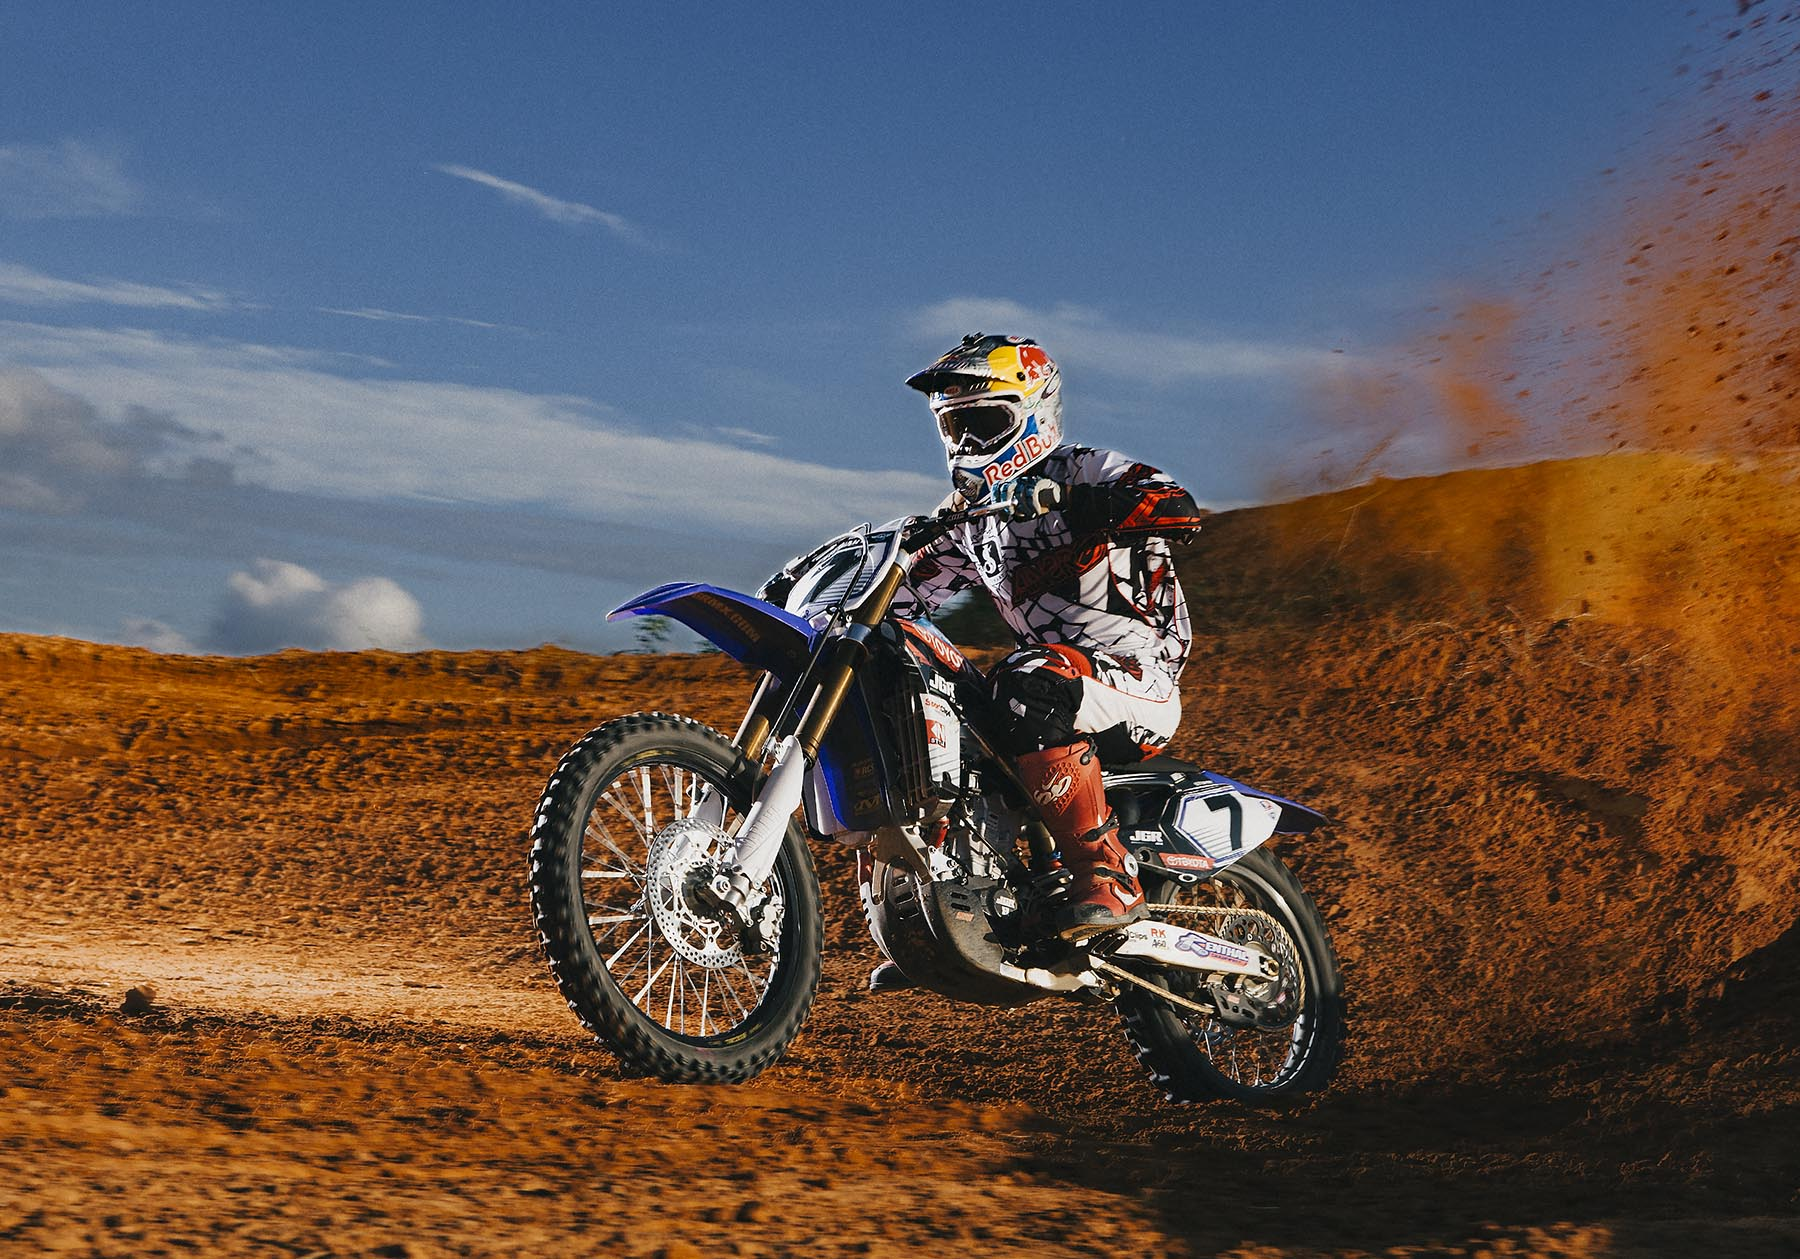 tampa-photographer-bob-croslin-redbull-james-stewart-motox